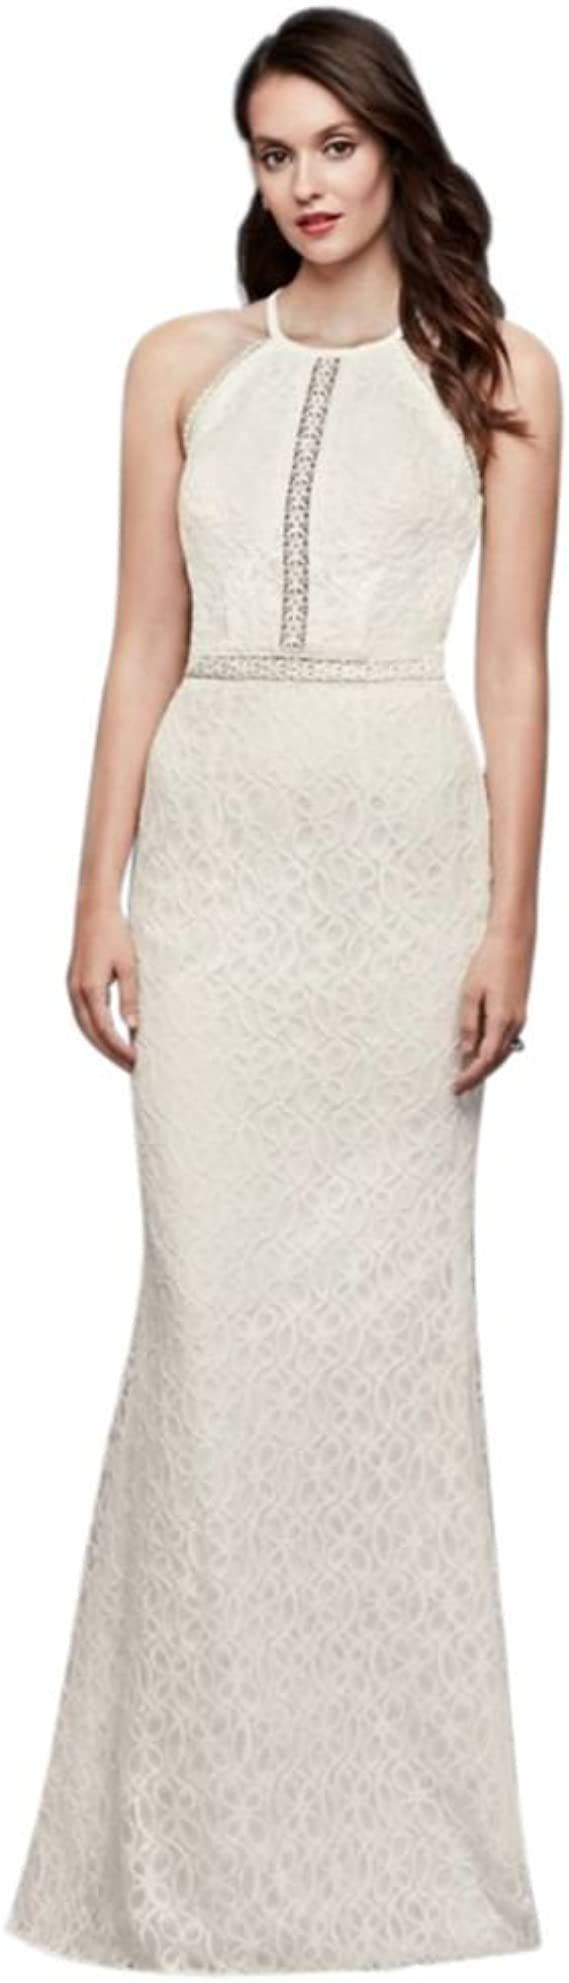 Floral Lace Racerback Sheath Wedding Dress Style Wg3888 Ivory 0 Amazon Ca Clothing Accessories,Best Spanx For Wedding Dress Plus Size